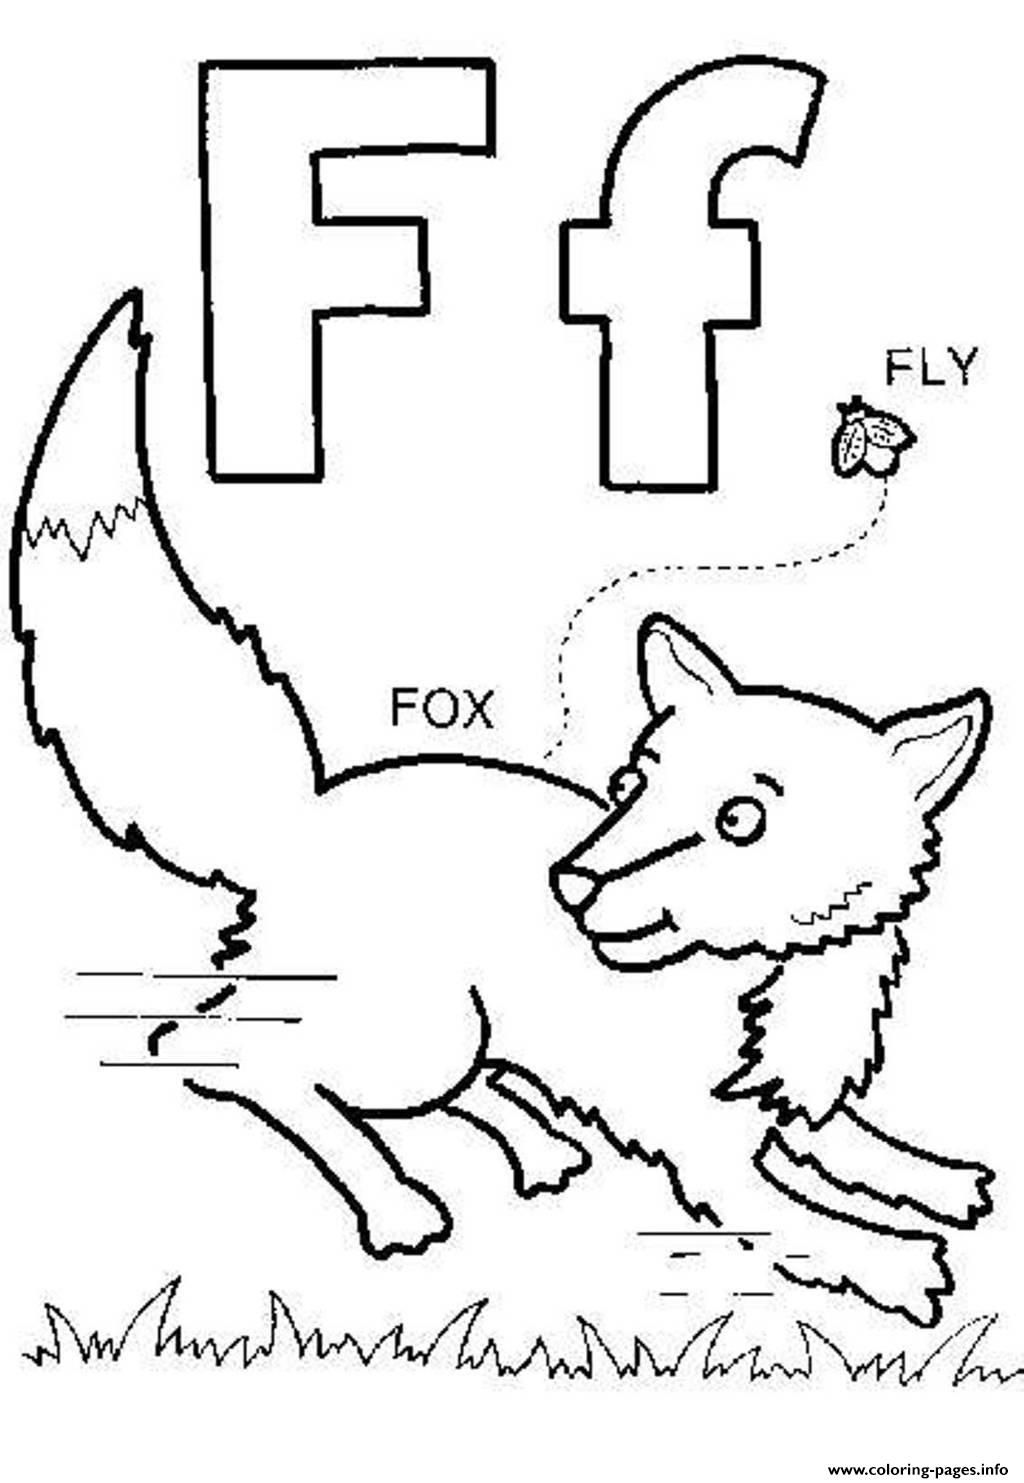 Fox And Fly Free Alphabet Scbf0 Coloring Pages Printable